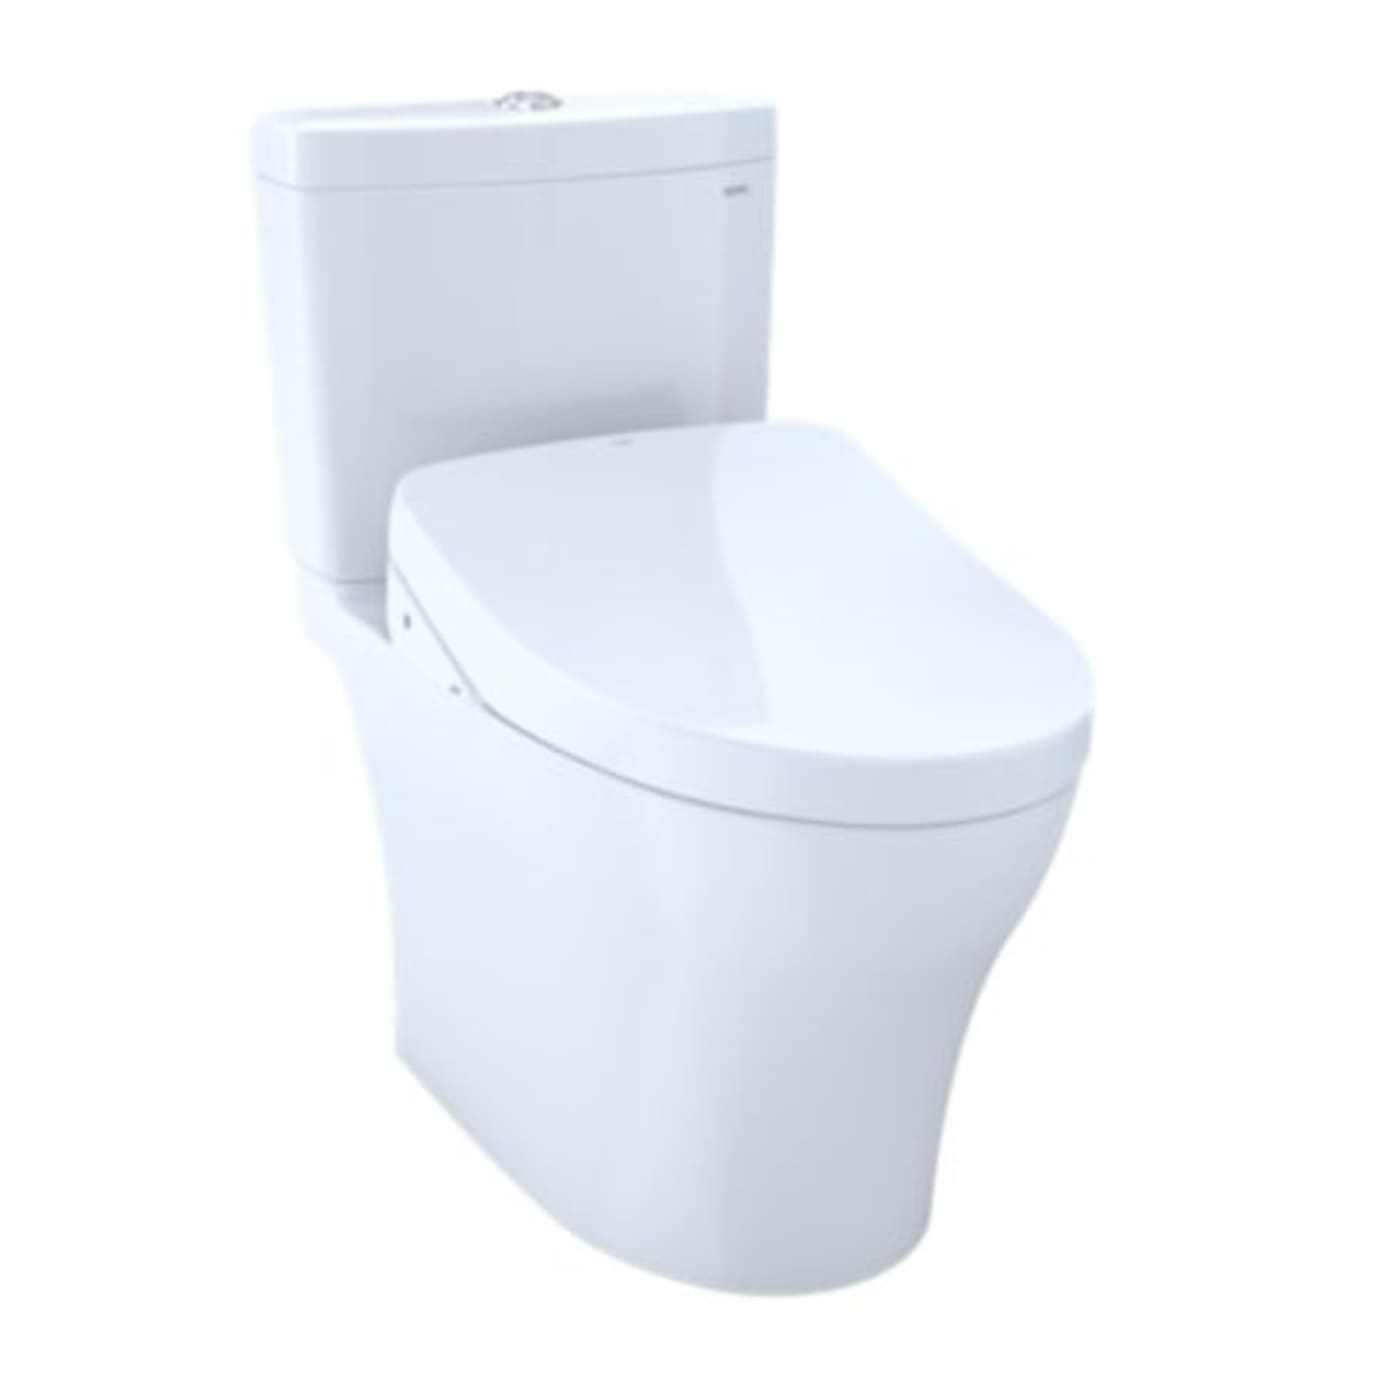 MW4463046CEMG#01 by Toto - Toilets | Goedekers.com